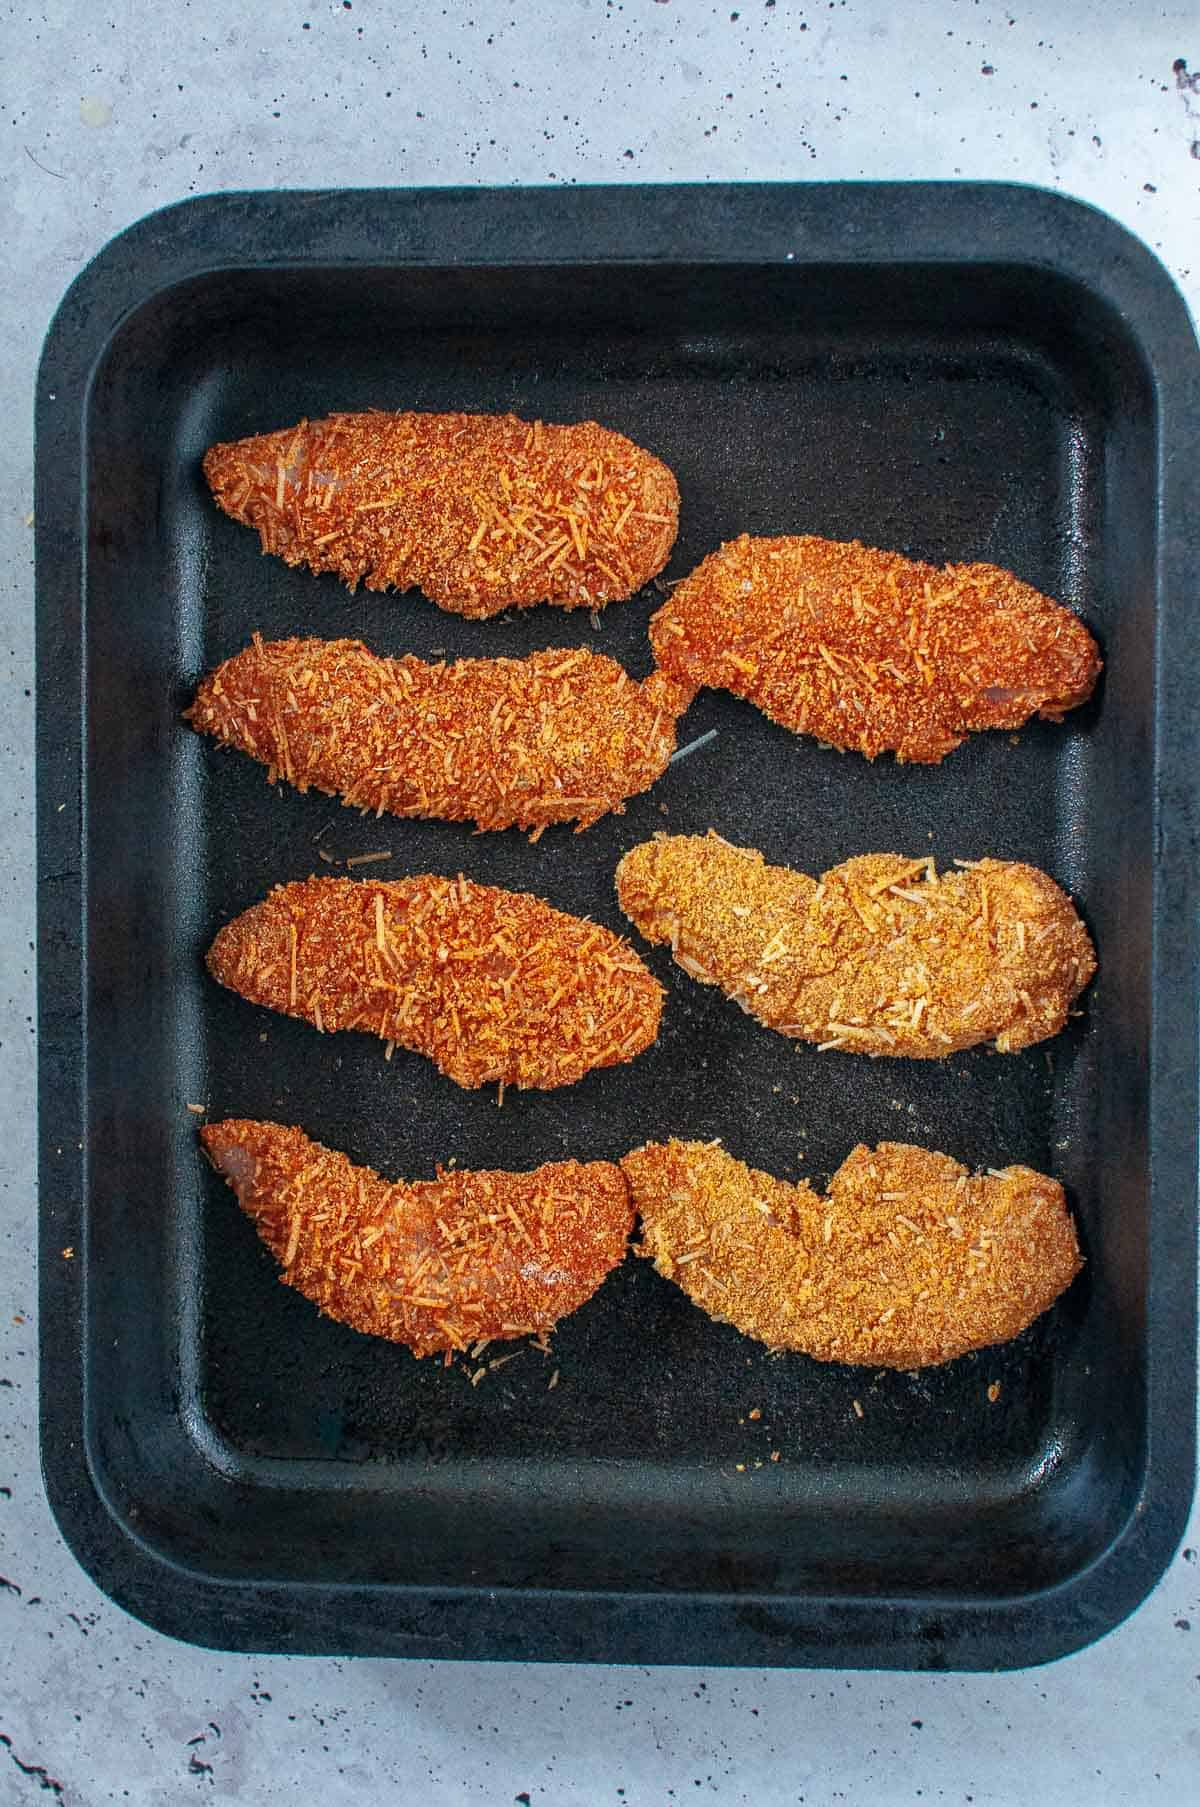 chicken tenders in a baking tray ready for oven